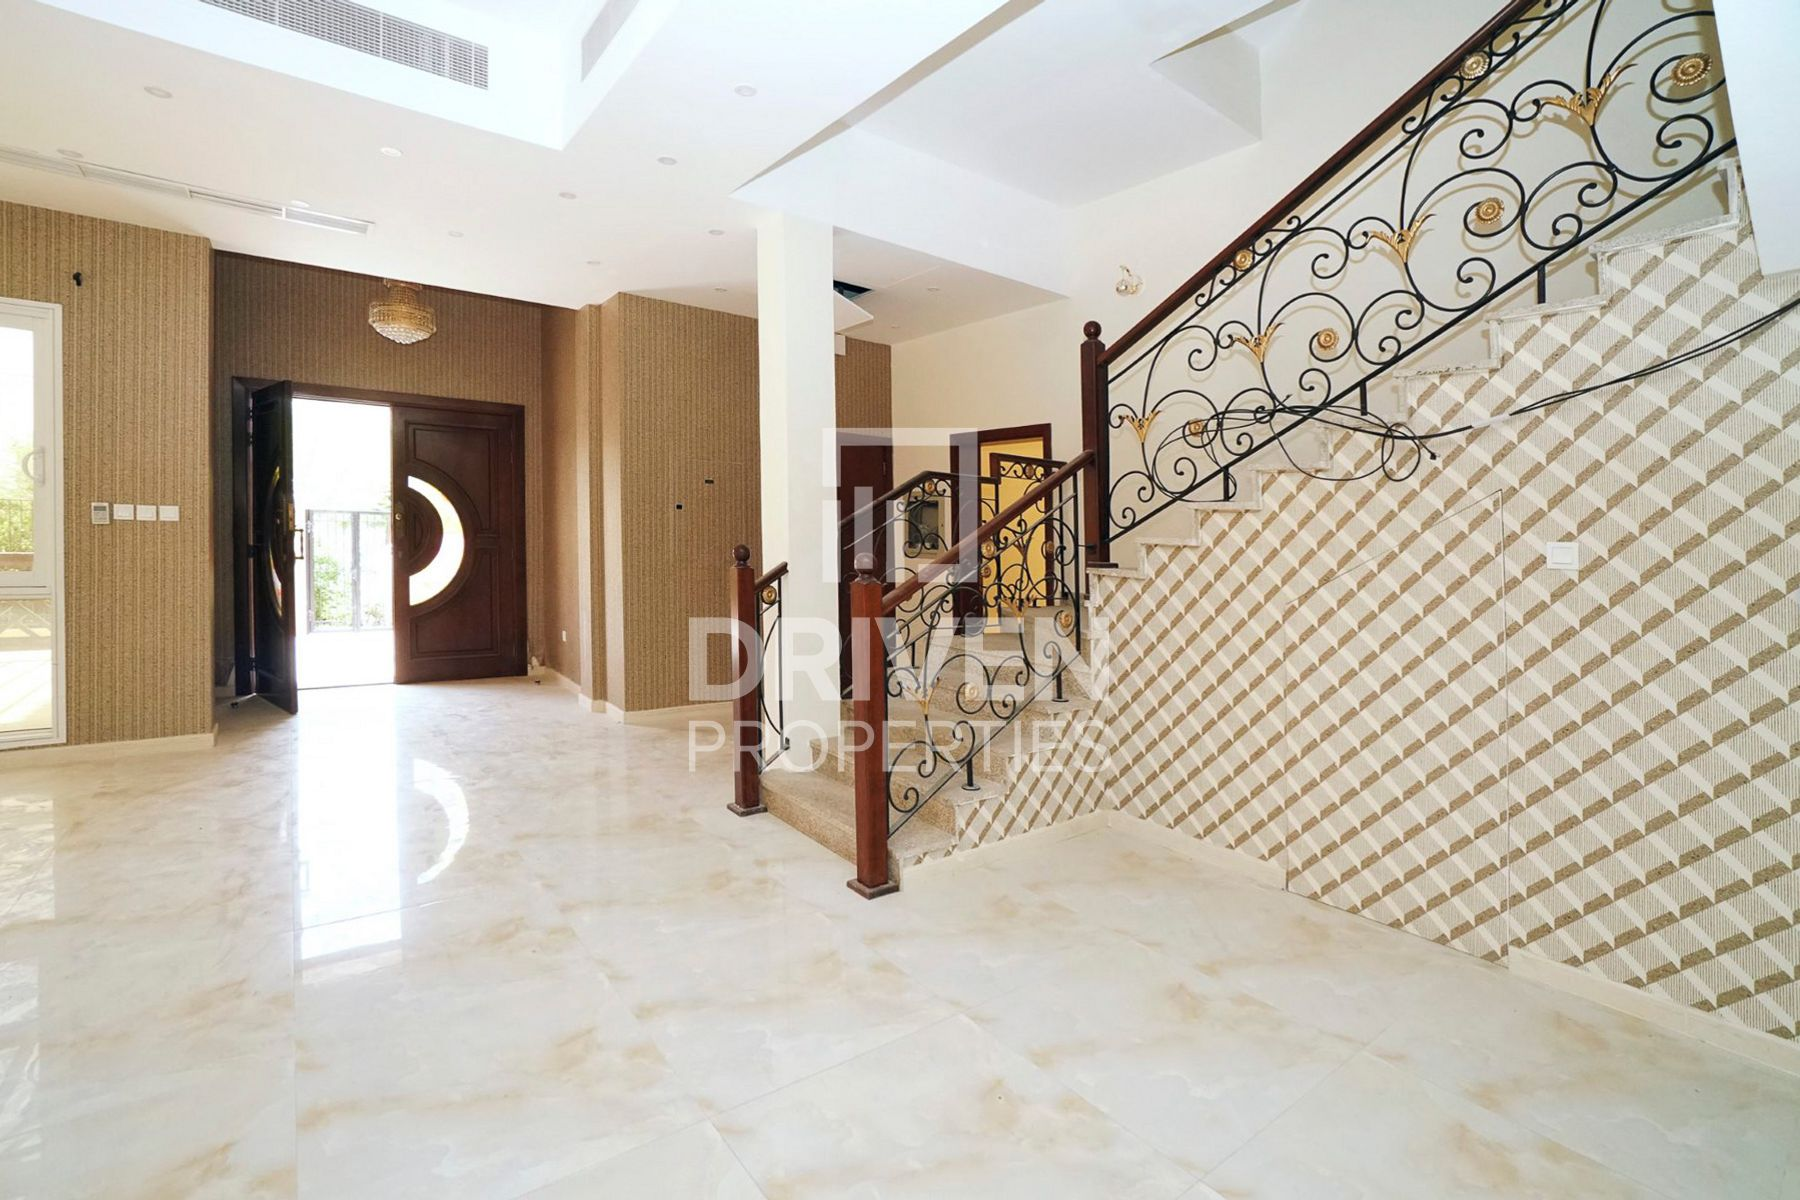 Villa for Sale in Hacienda - The Villa